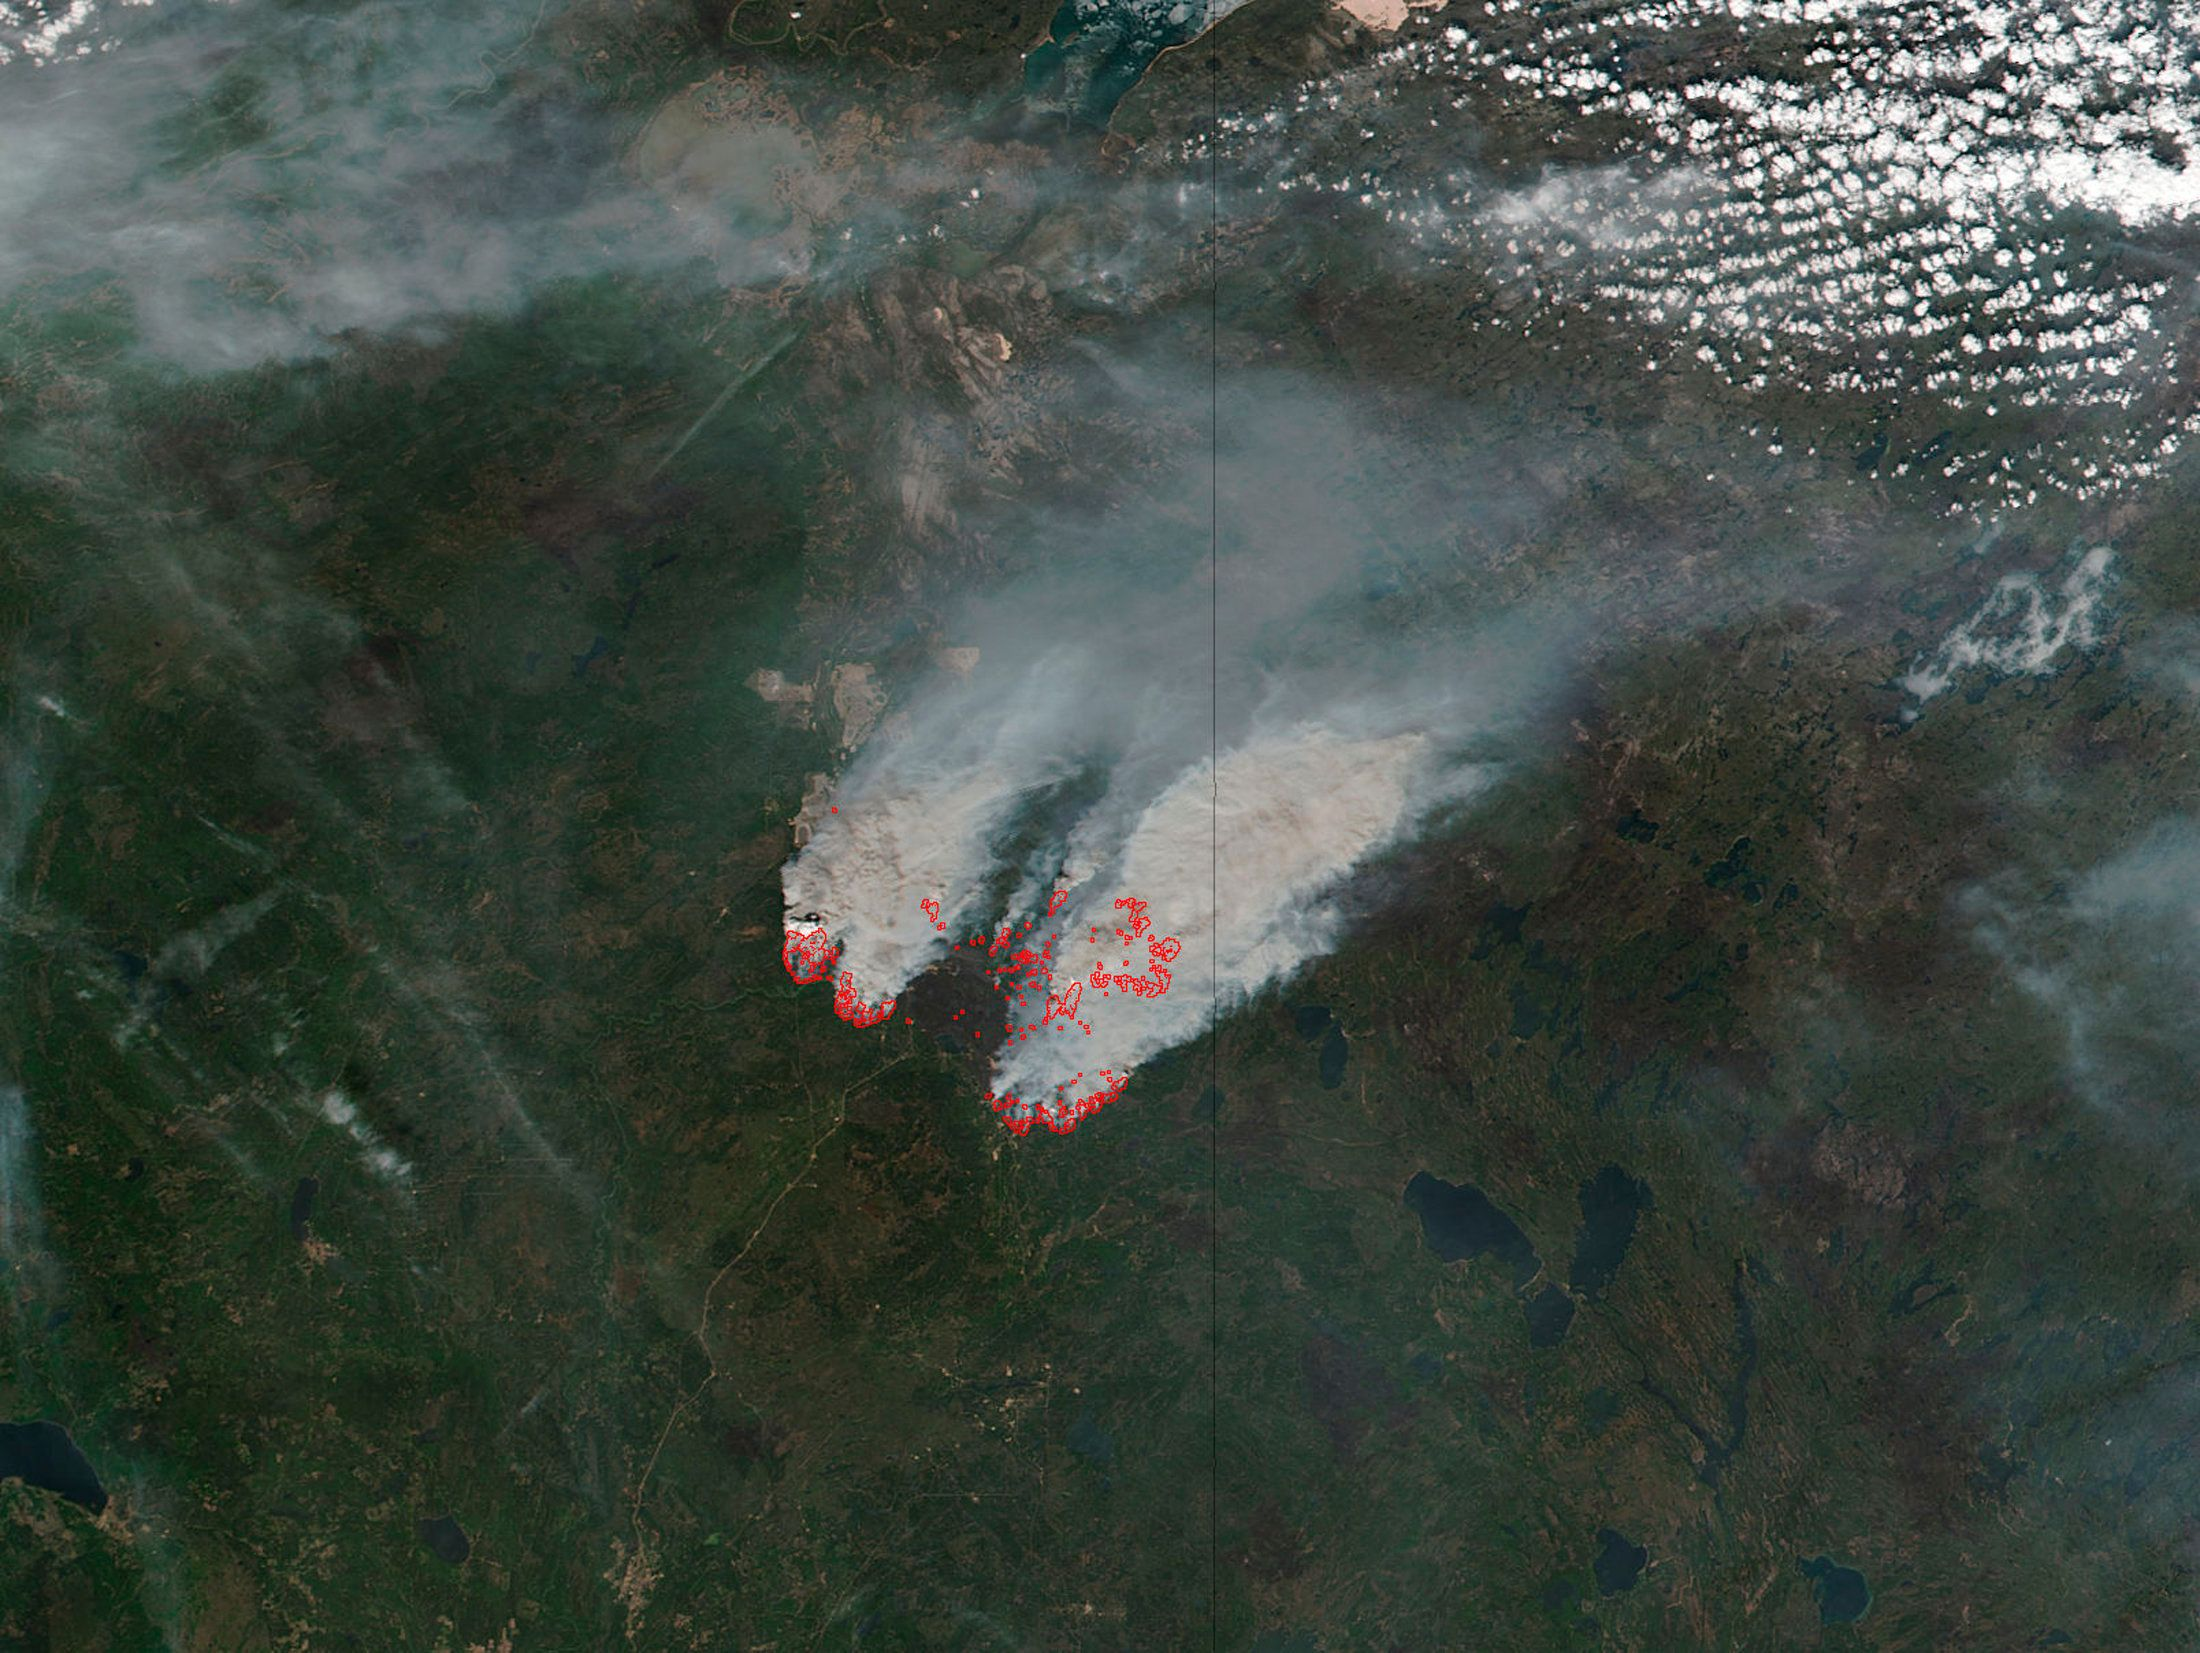 NASA's satellite image shows columns of smoke rising up from the myriad of wildfires, with NASA outlining actively burning areas in red over the Fort McMurray, Alberta, Canada on May 16, 2016.   Courtesy NASA/Handout via REUTERS  ATTENTION EDITORS - THIS IMAGE WAS PROVIDED BY A THIRD PARTY. EDITORIAL USE ONLY.  TPX IMAGES OF THE DAY